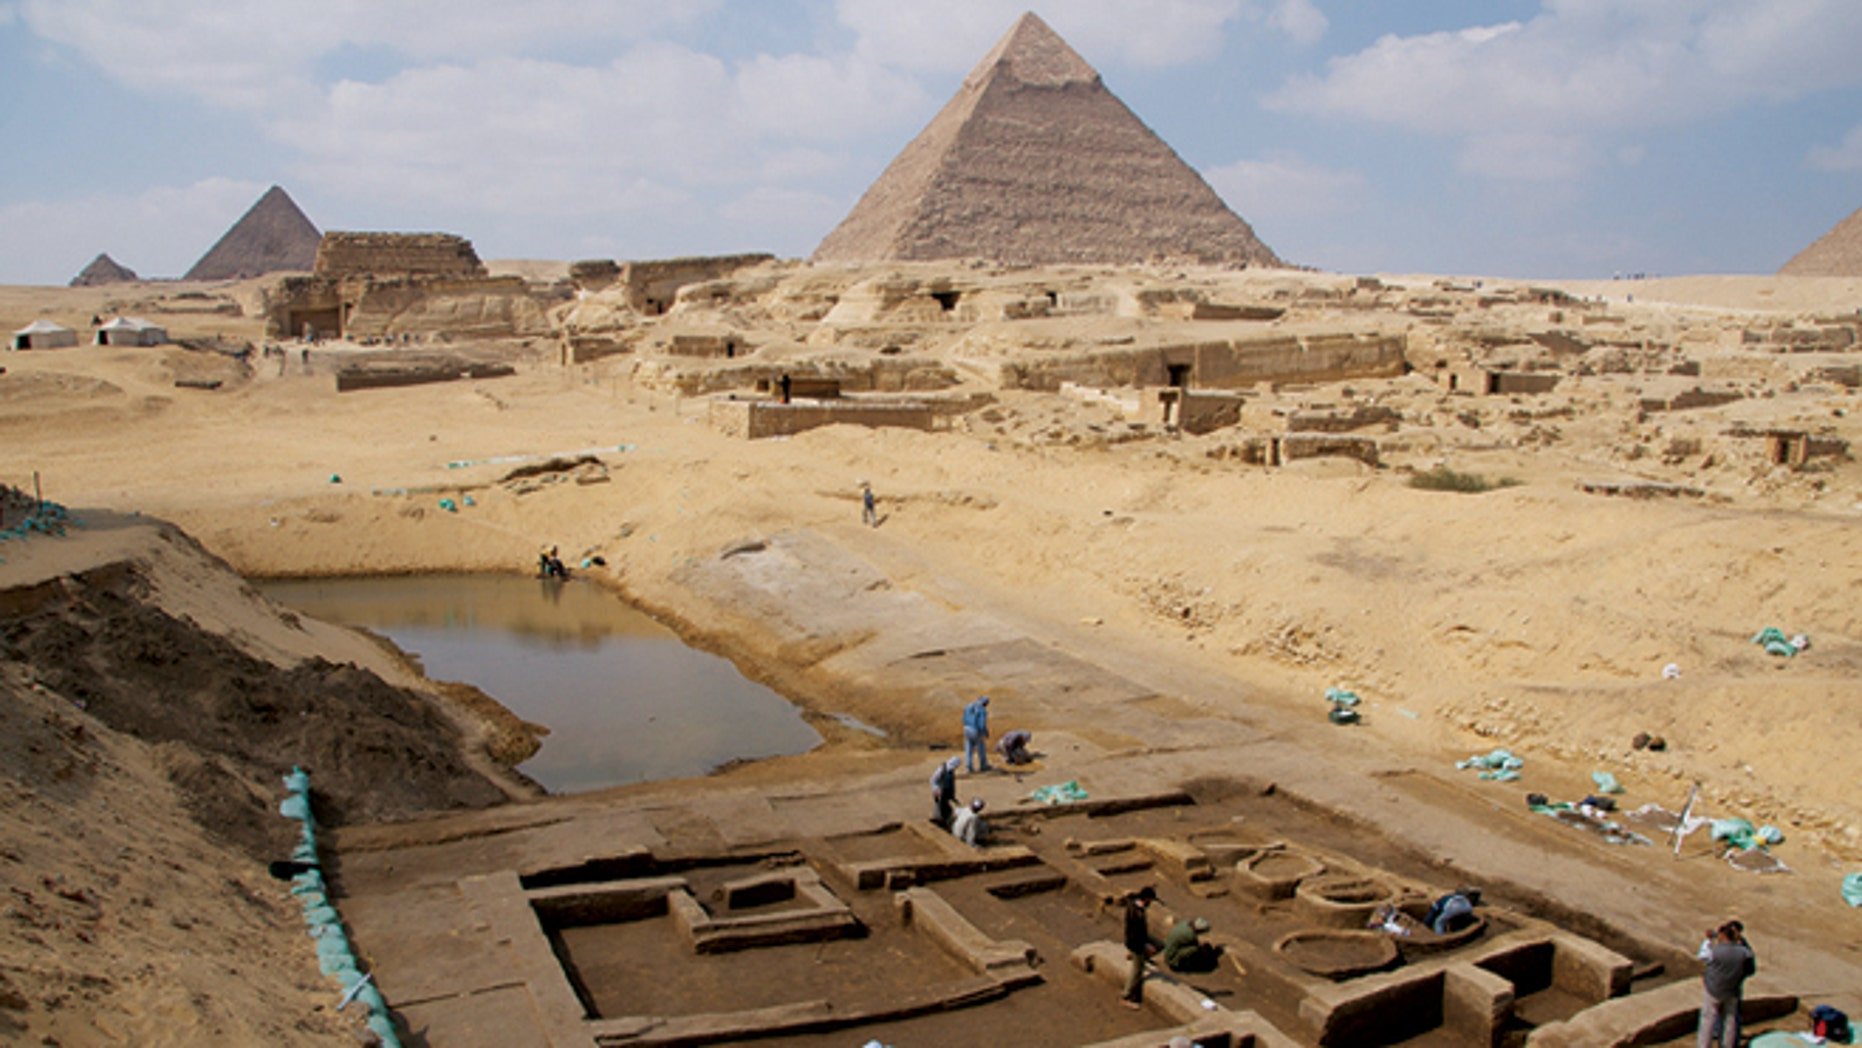 "Archaeologists working at the Giza Pyramids have made several new discoveries that shed light on life at the time the pyramids were built. Among the discoveries is a basin that may have been part of a thriving harbor and a ""silo building complex,"" where researchers have found numerous bones from the forelimbs of cattle, offerings in ancient Egypt, suggesting royal cult priests perhaps venerating the pharaoh Khafre occupied the complex."